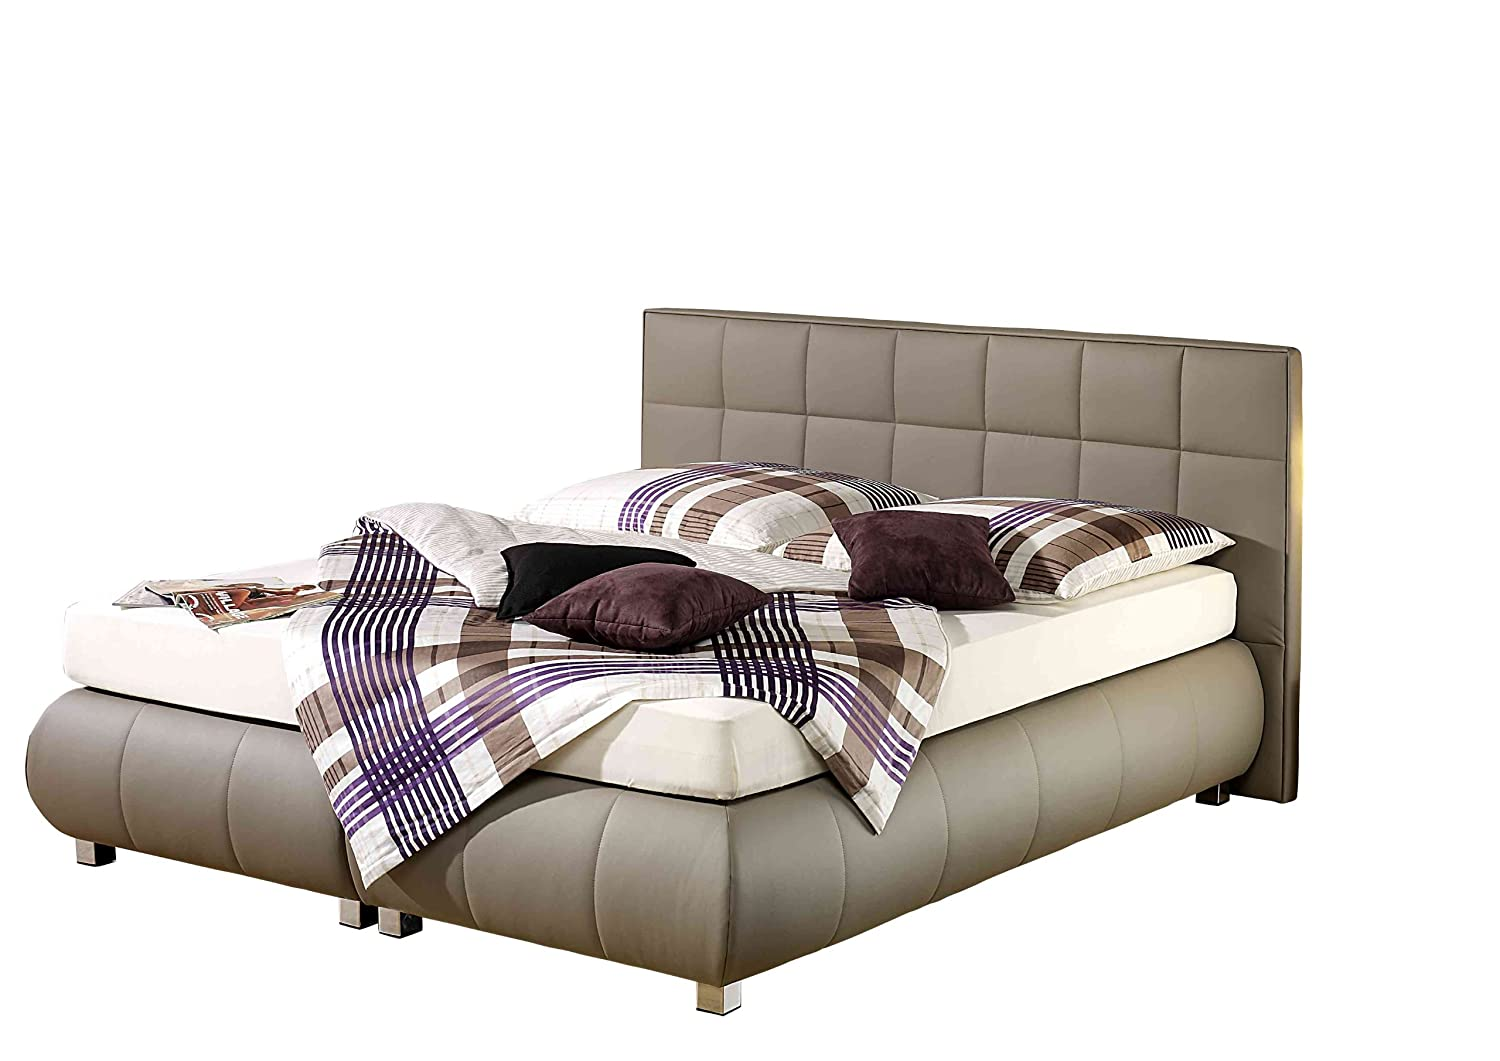 Maintal Betten 234196-4130 Boxspringbett Elias 180 x 200 cm, taupe